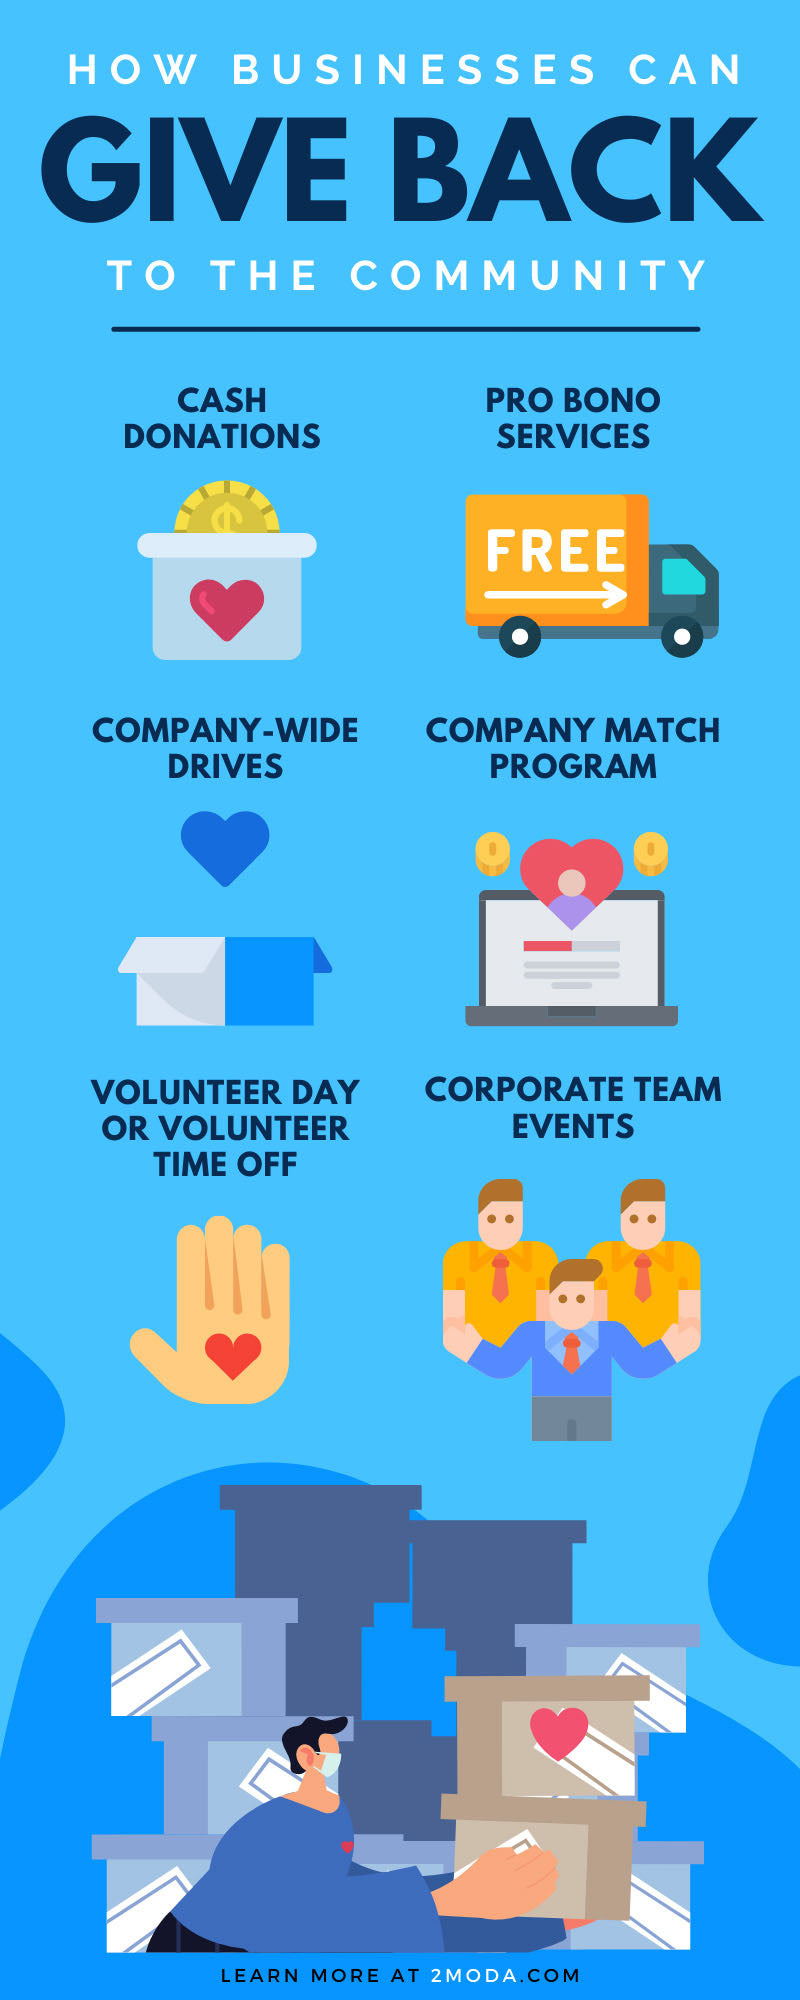 How Businesses Can Give Back To the Community